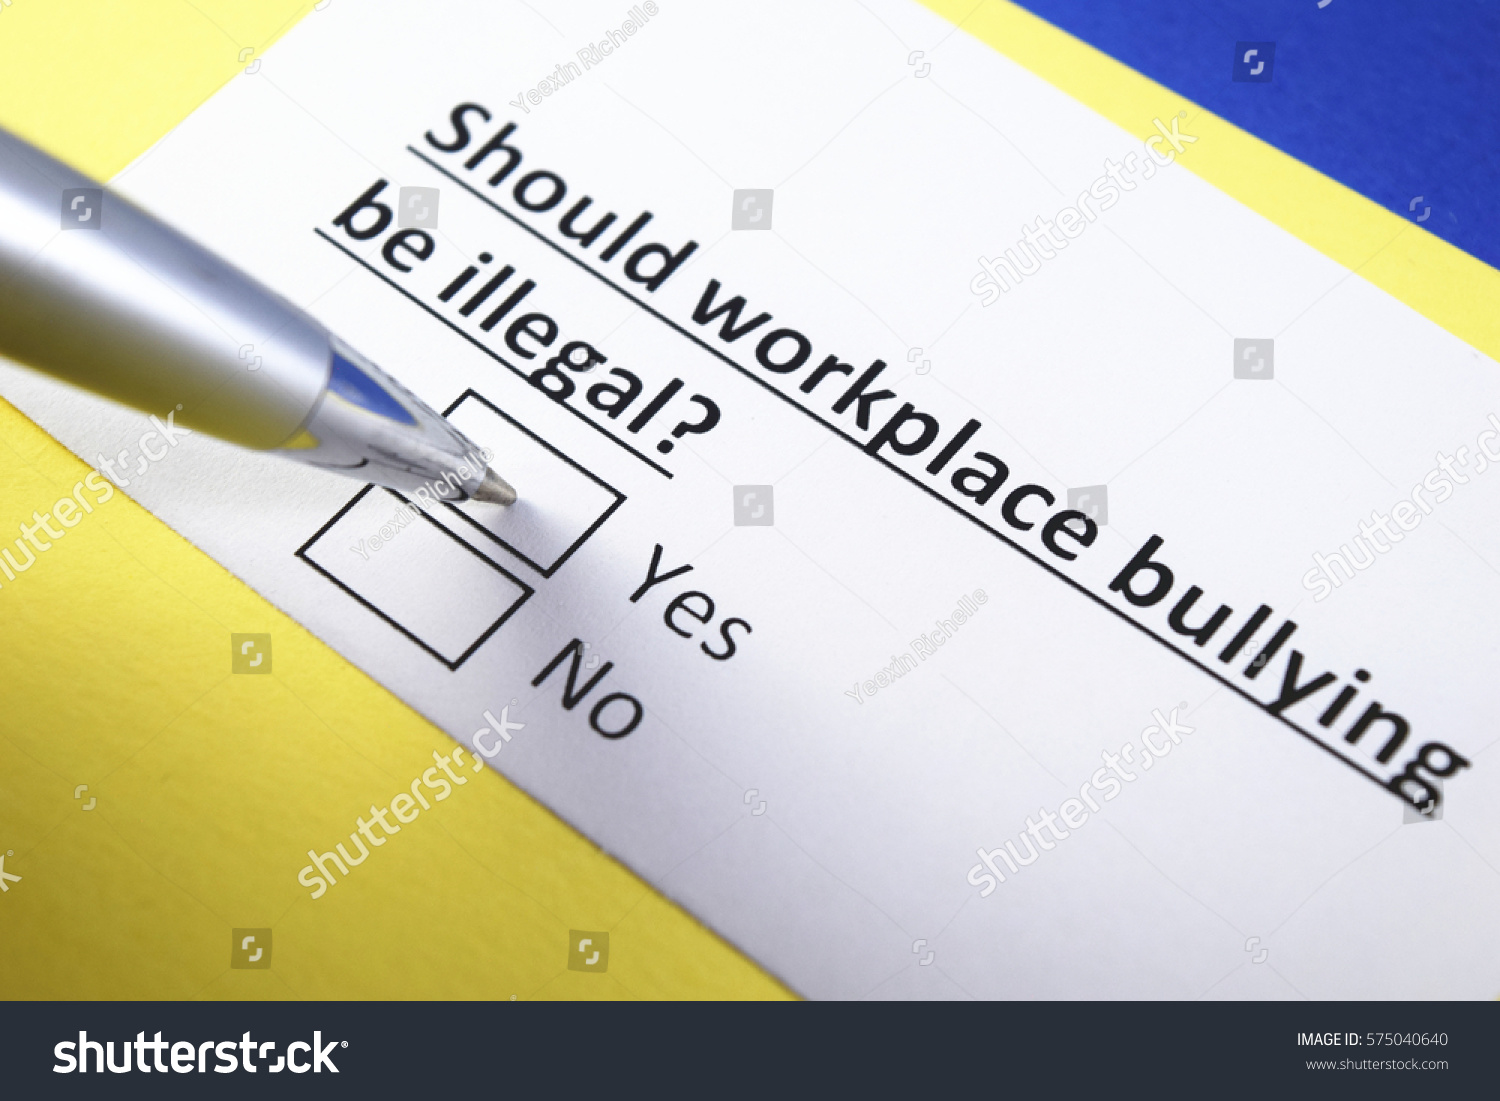 Should work place bullying be illegal? yes or no